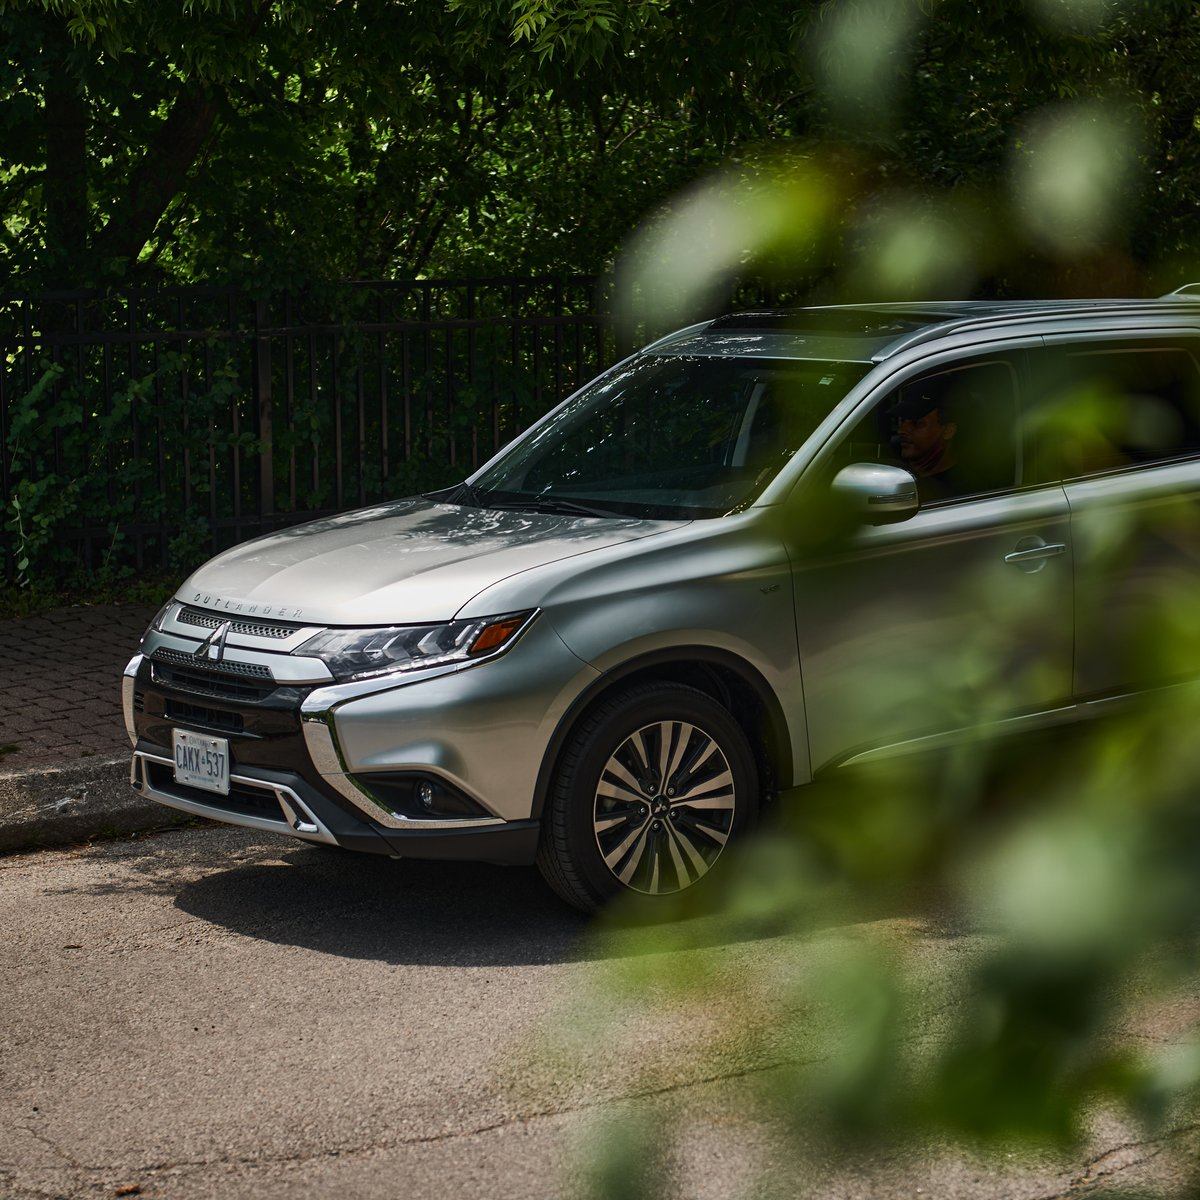 More Space. More Adventure.  #Outlander #MitsubishiMotors #DriveyourAmbition #RéalisezVosAmbitions https://t.co/Z0qQk6Yybf